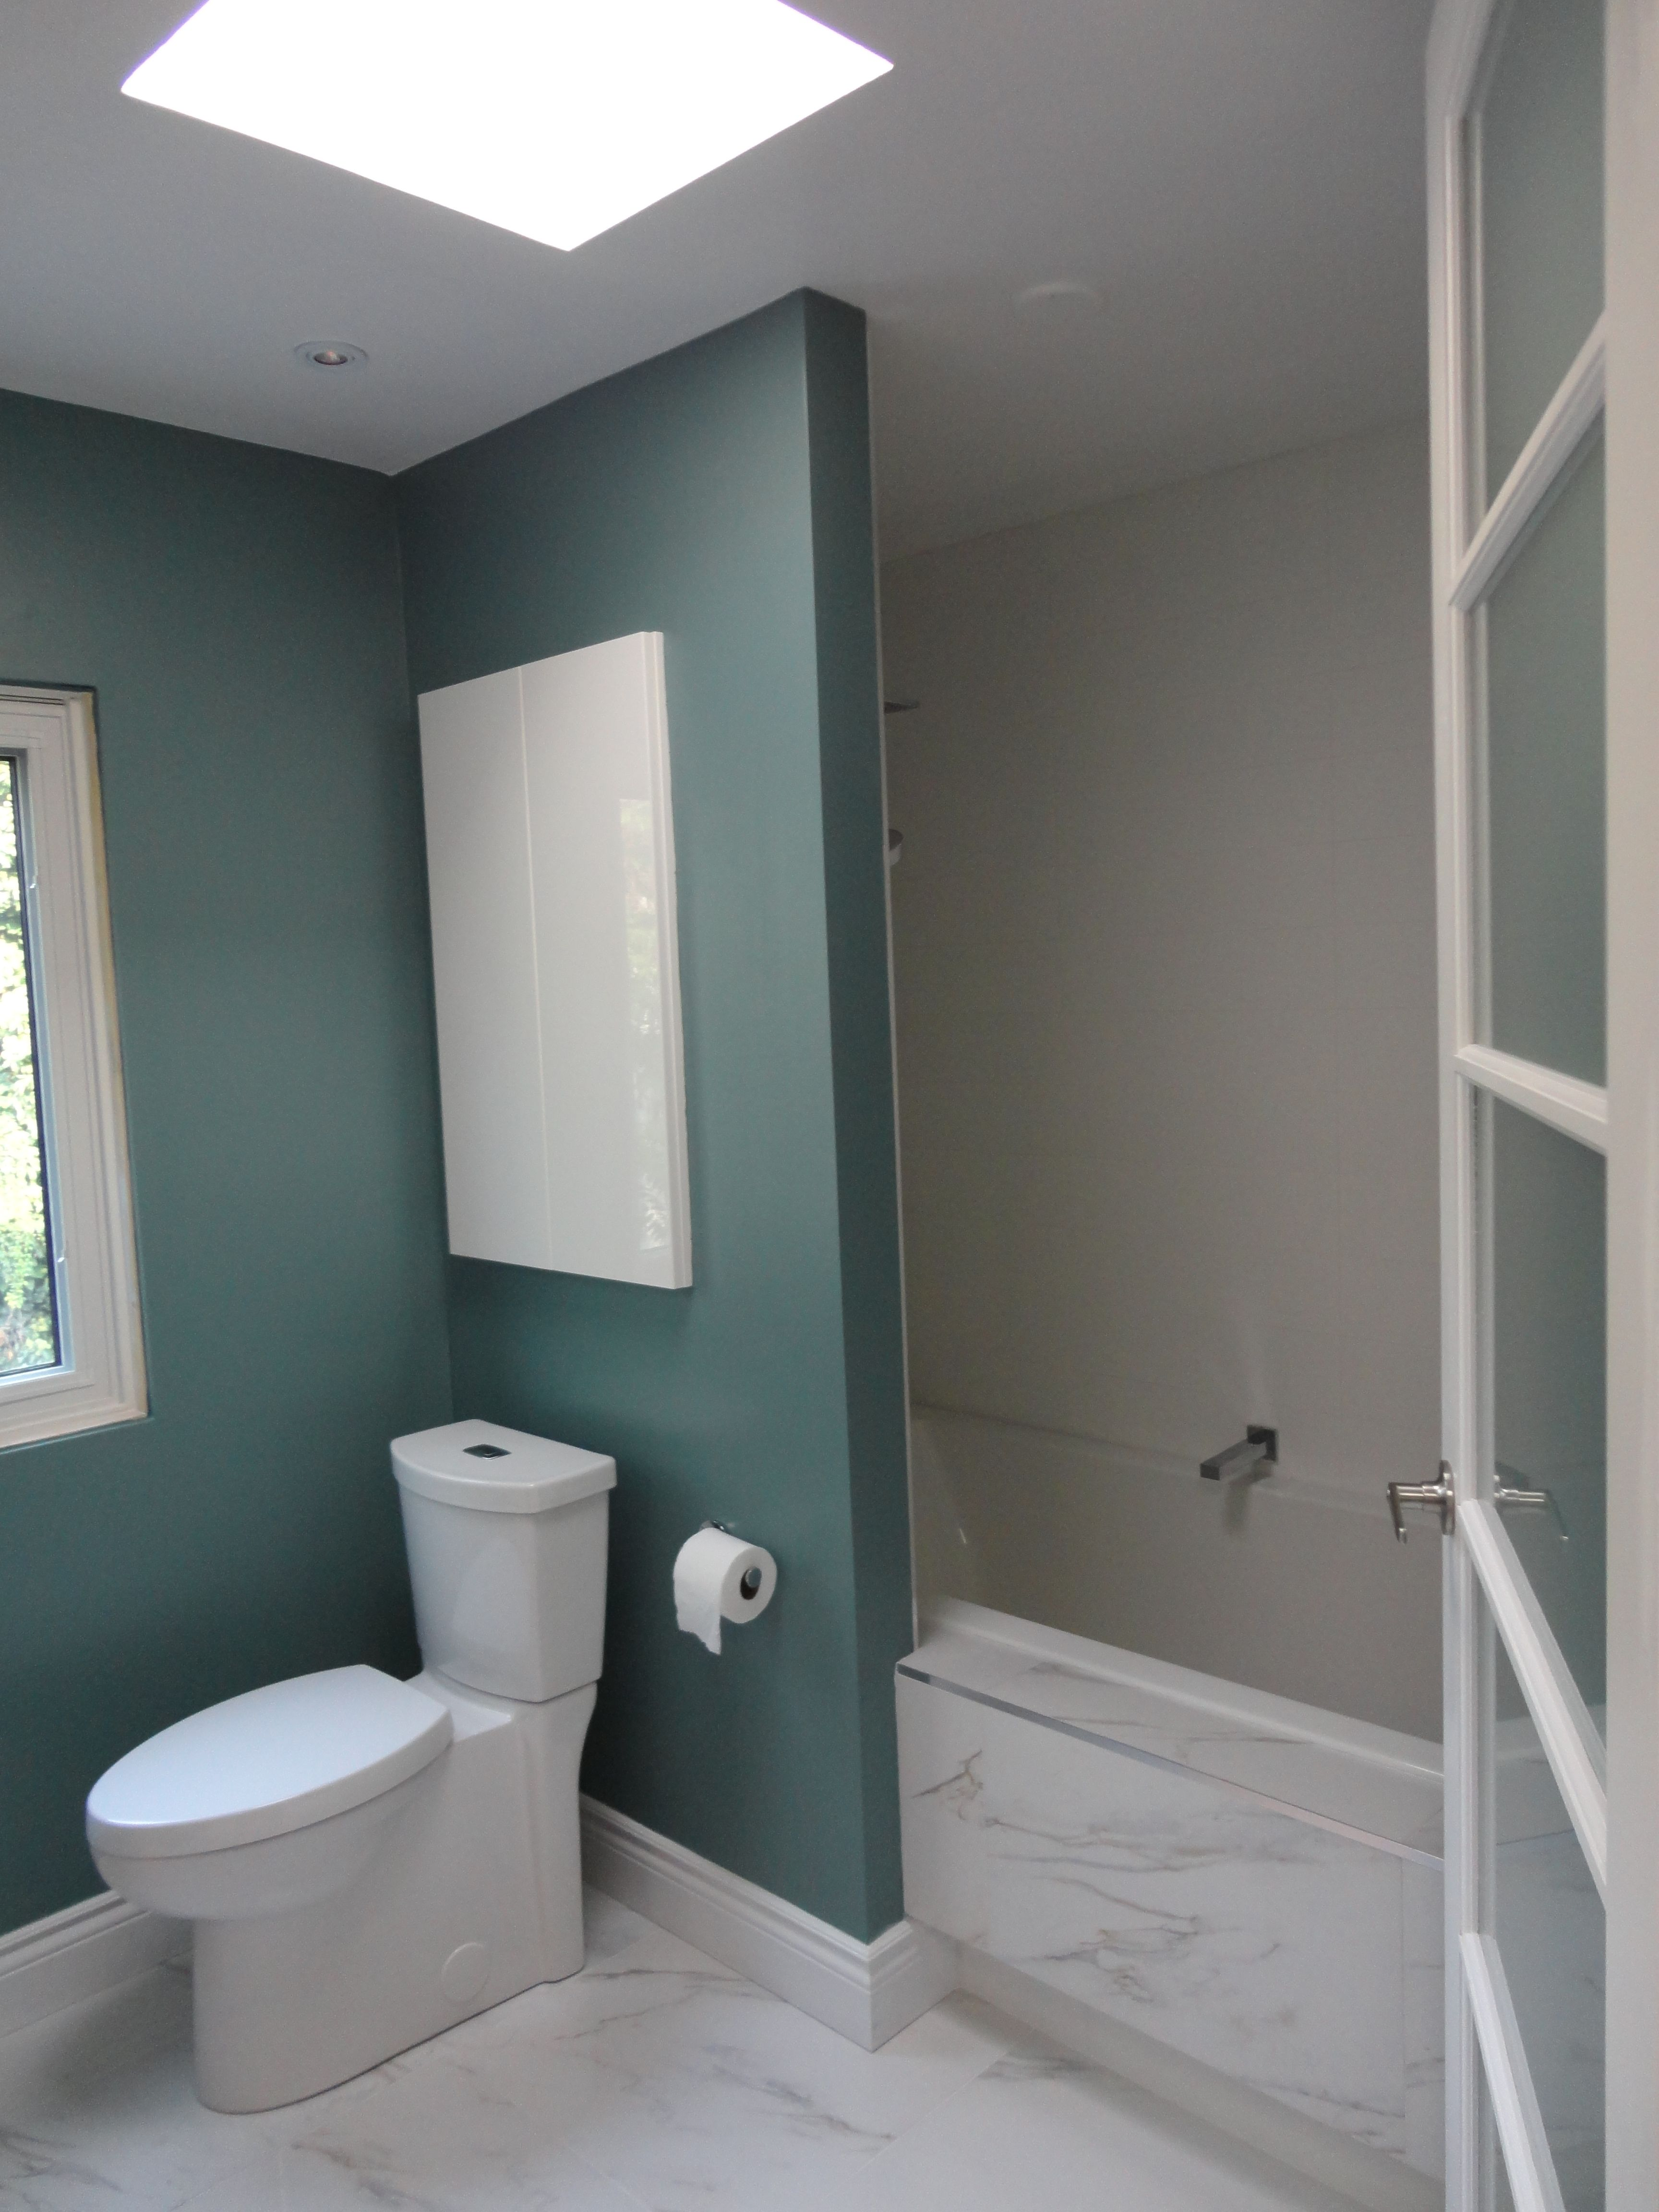 Perfect Townhouse Bathroom Expansion From 4x8 To 8x12